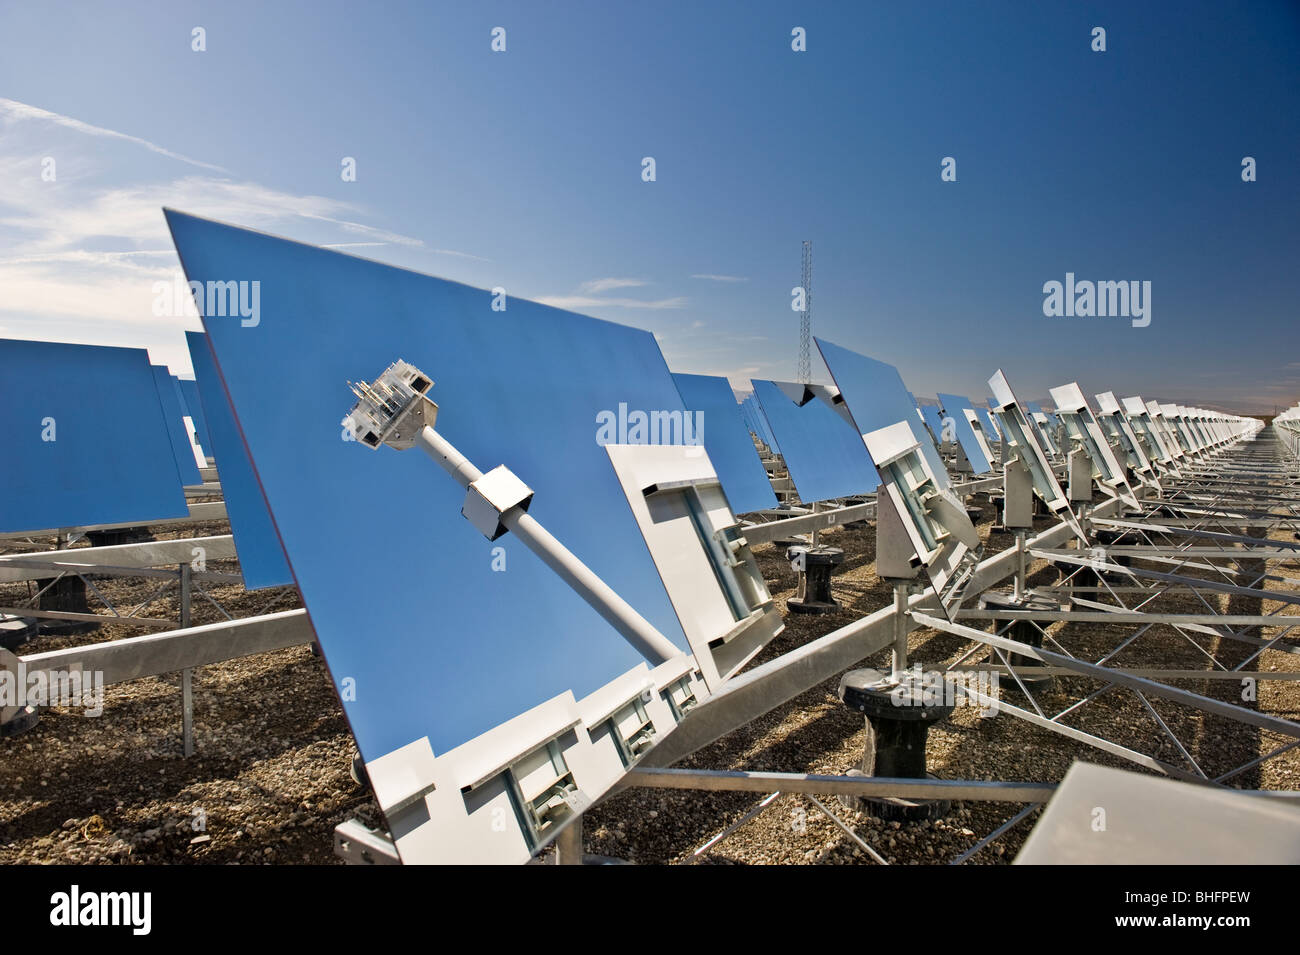 Heliostat Mirrors With Reflection Of A Tower Mounted